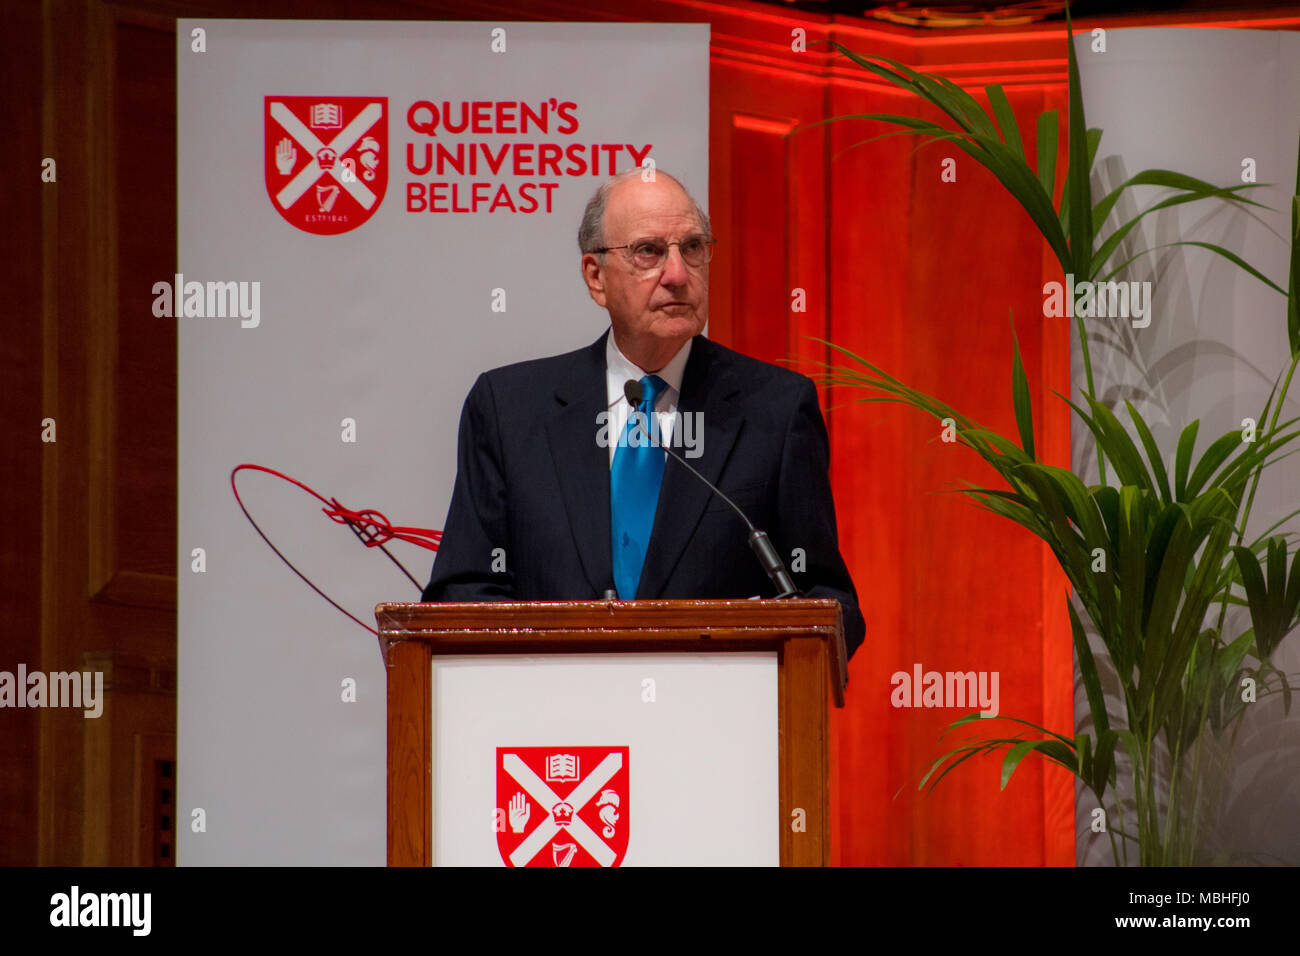 Belfast, Northern Ireland. 10th April, 2018. Building Peace Event celebrating the 20th Anniversary of the Good Friday Agreement in Belfast, Northern Ireland, United Kingdom at Queen's University with Bill Clinton, Tony Blair, Bertie Ahern and Senator George J Mitchell Credit: Daniel Bradley/Alamy Live News Stock Photo